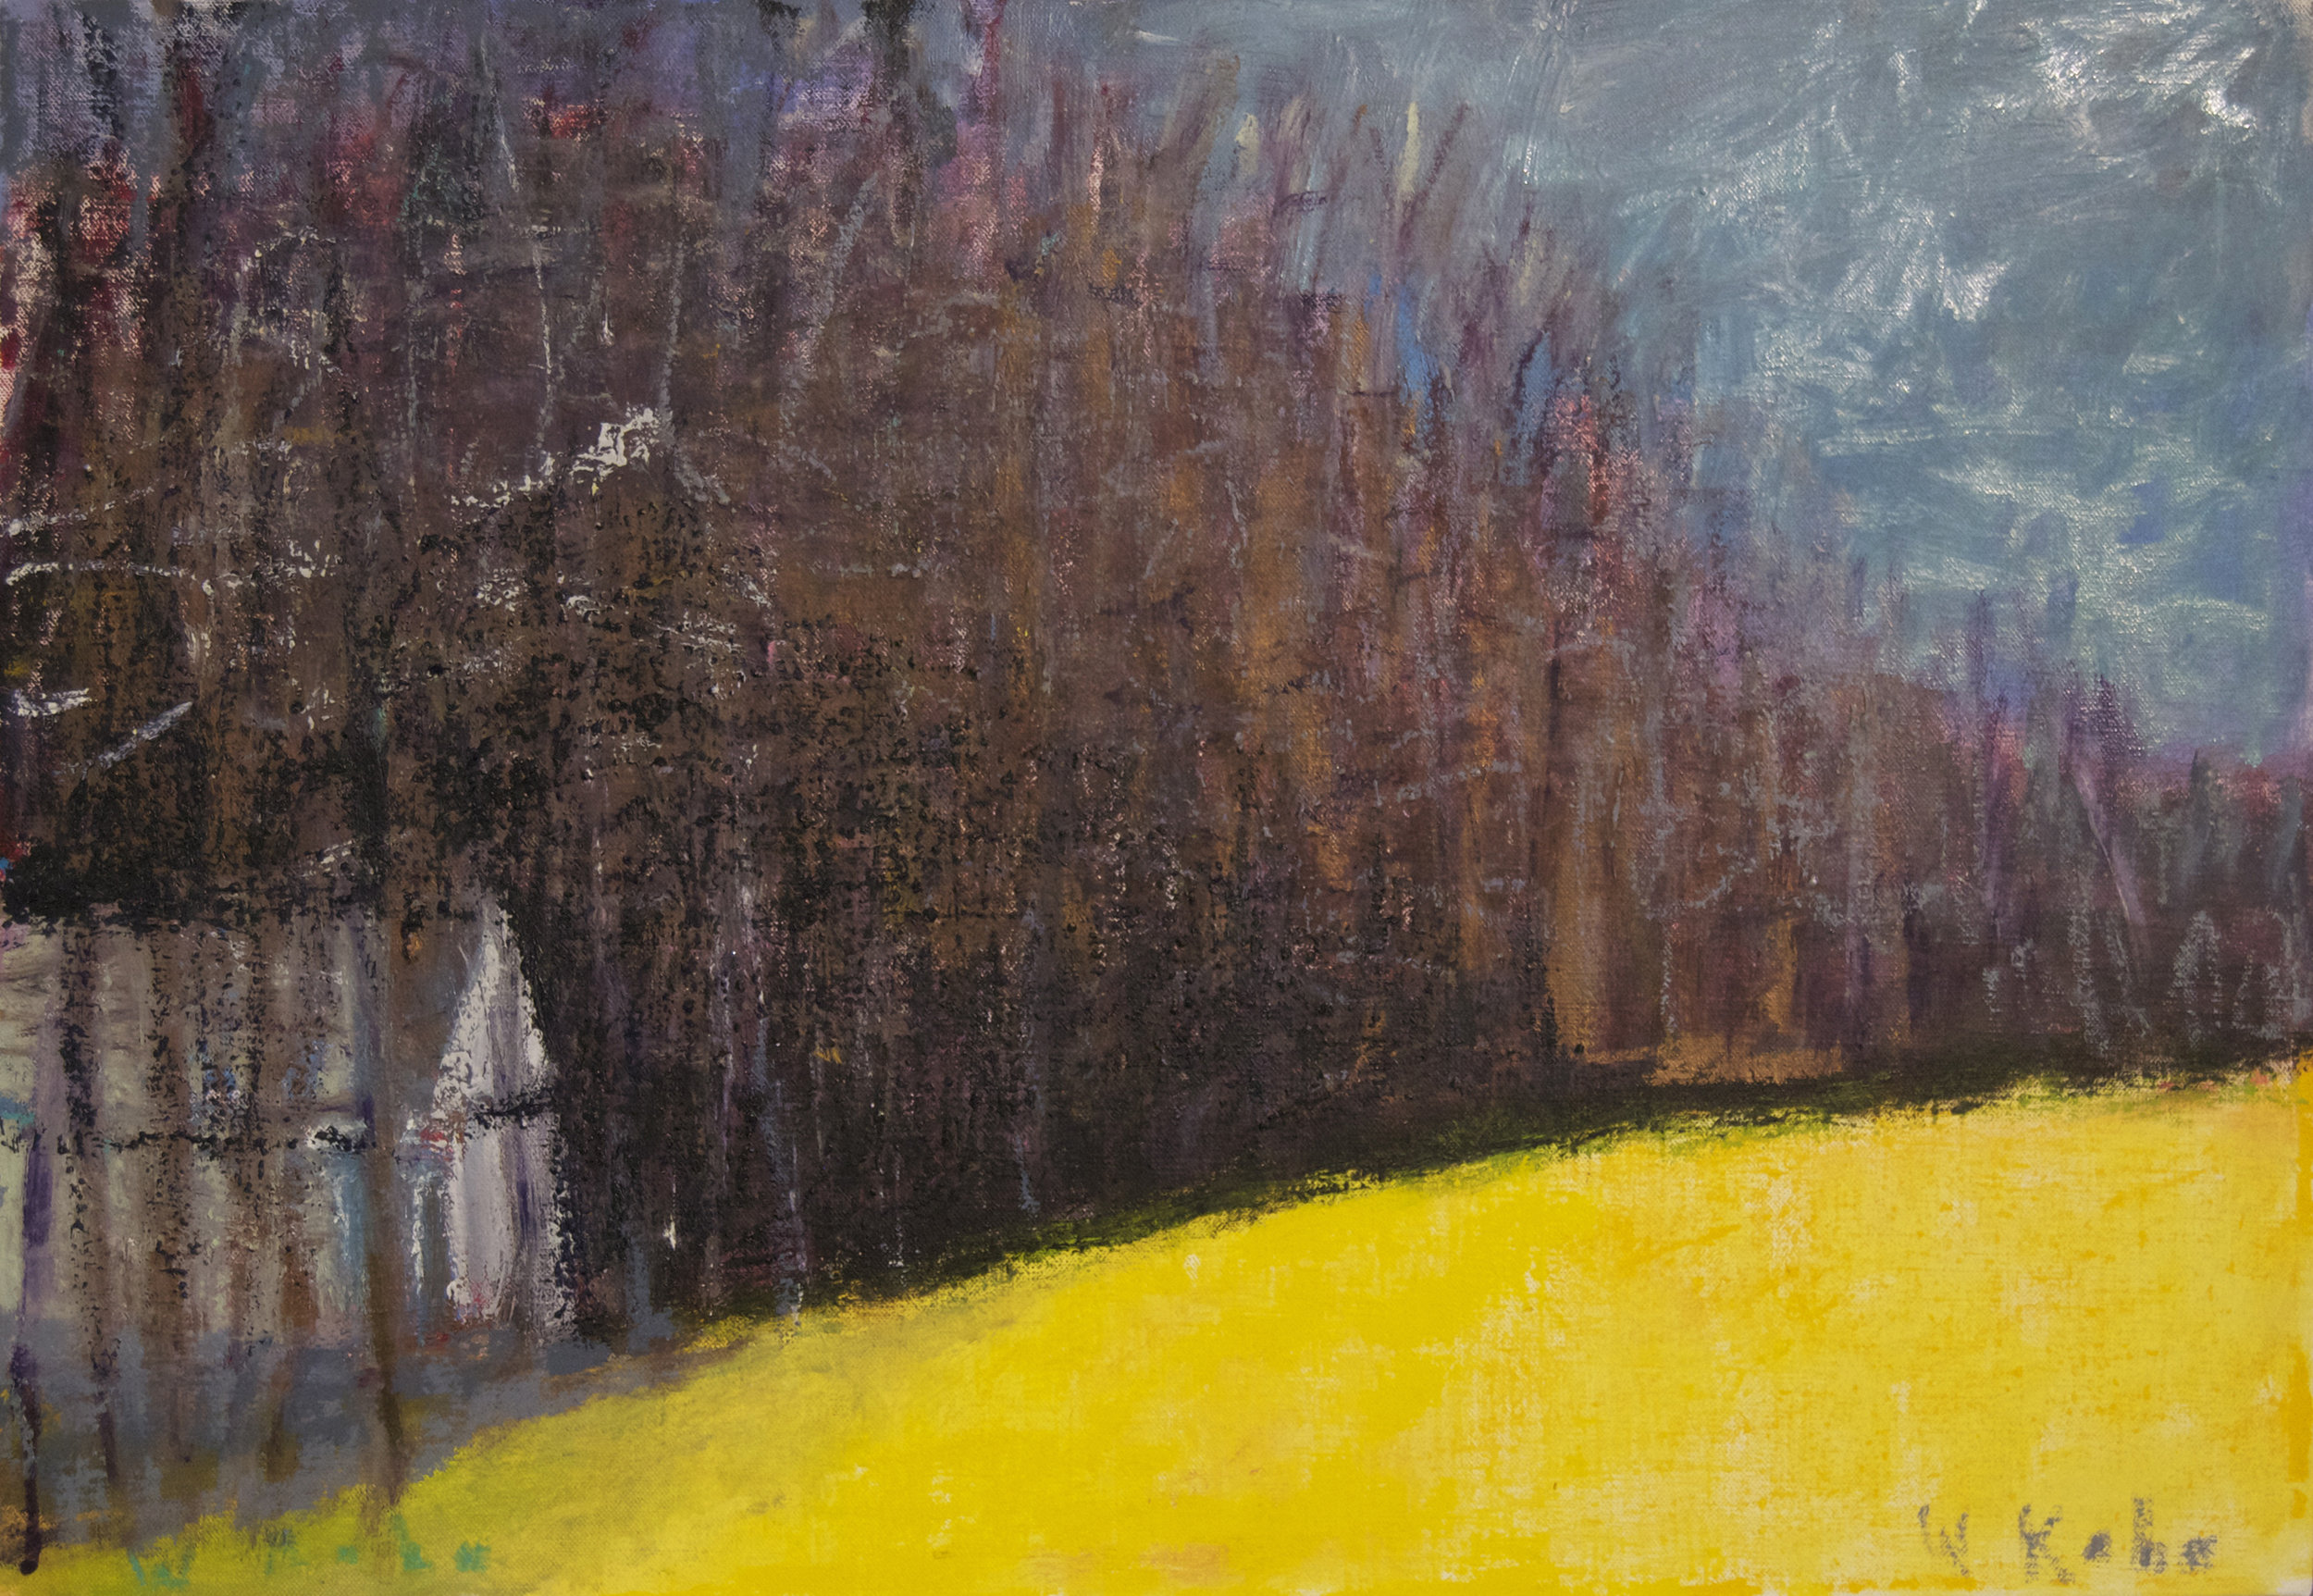 White Cabin Among Black Trees , 2014 Oil on canvas 18 x 26 inches